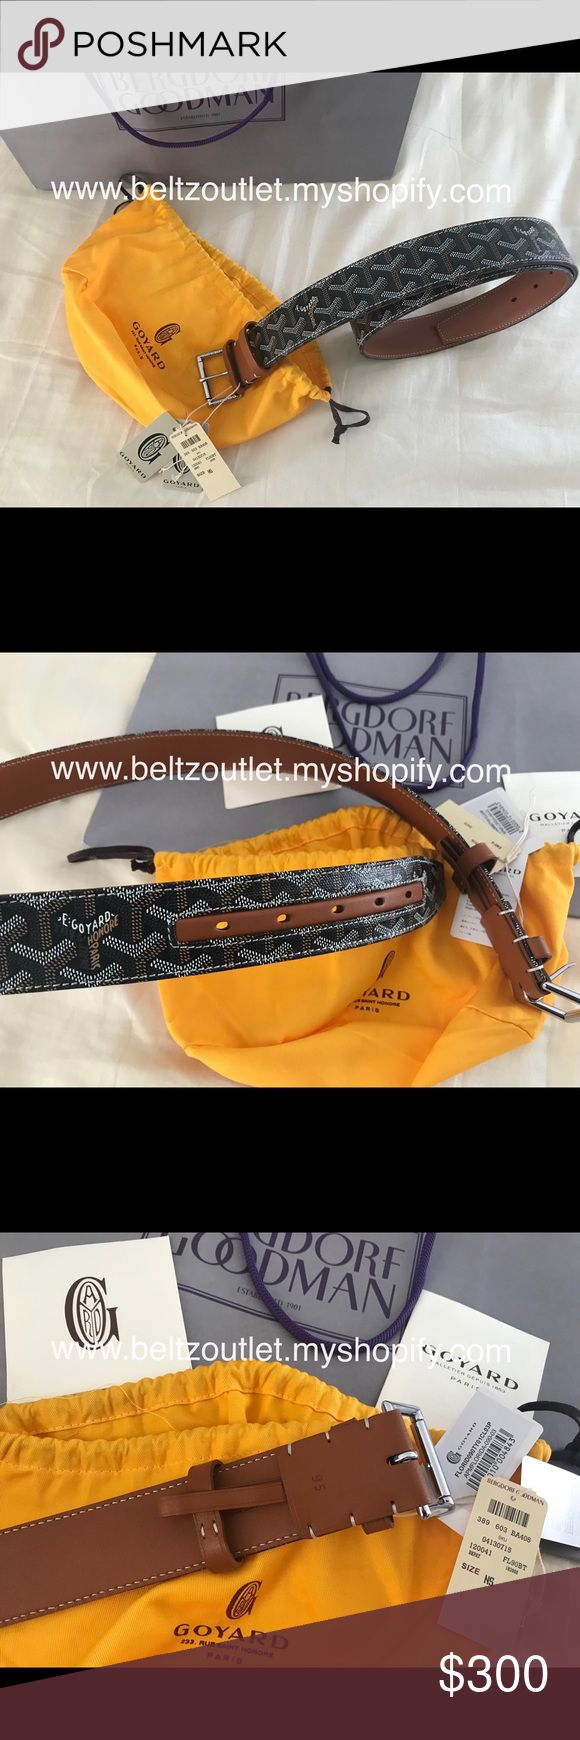 Sale $145 brown monogram Goyard belt Brown monogram Goyard belt. Comes with dust bag and tags. Sizes 90cm-115cm in stock. Best prices and quality guaranteed. Shop with confidence. 100% Satisfaction Guaranteed. Accessories Belts